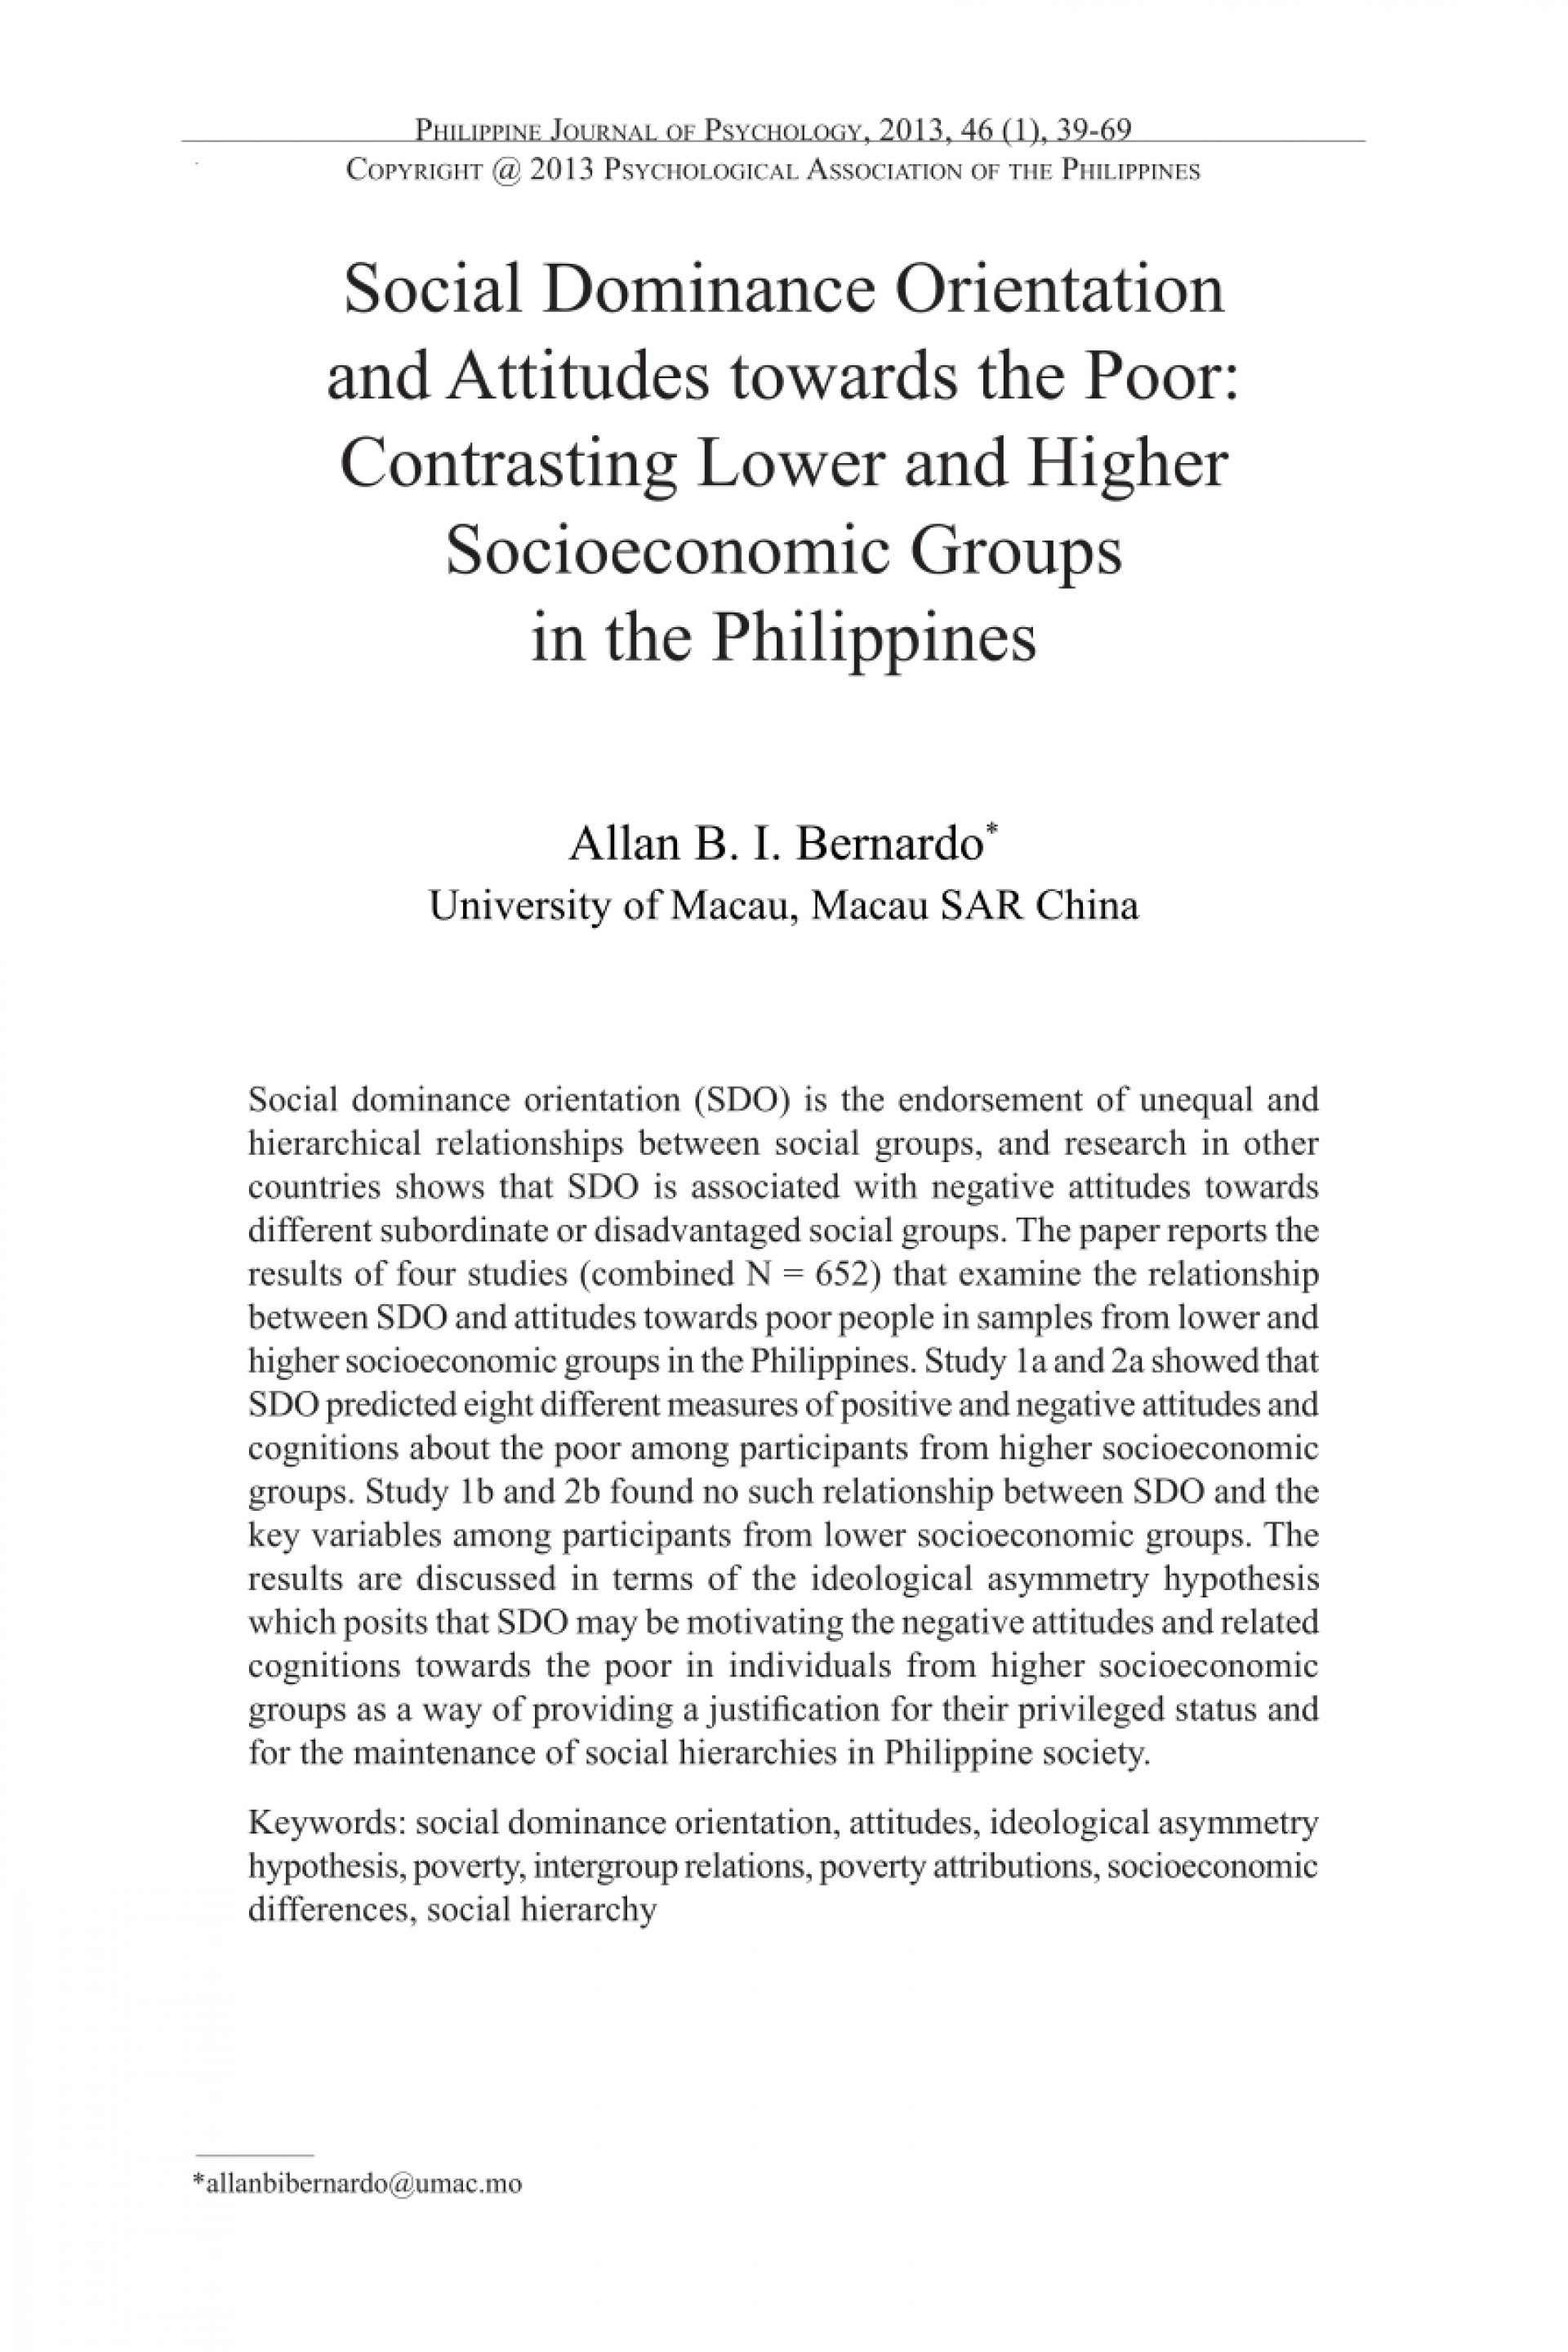 009 Research Paper Largepreview Poverty In The Philippines Remarkable Abstract 1920